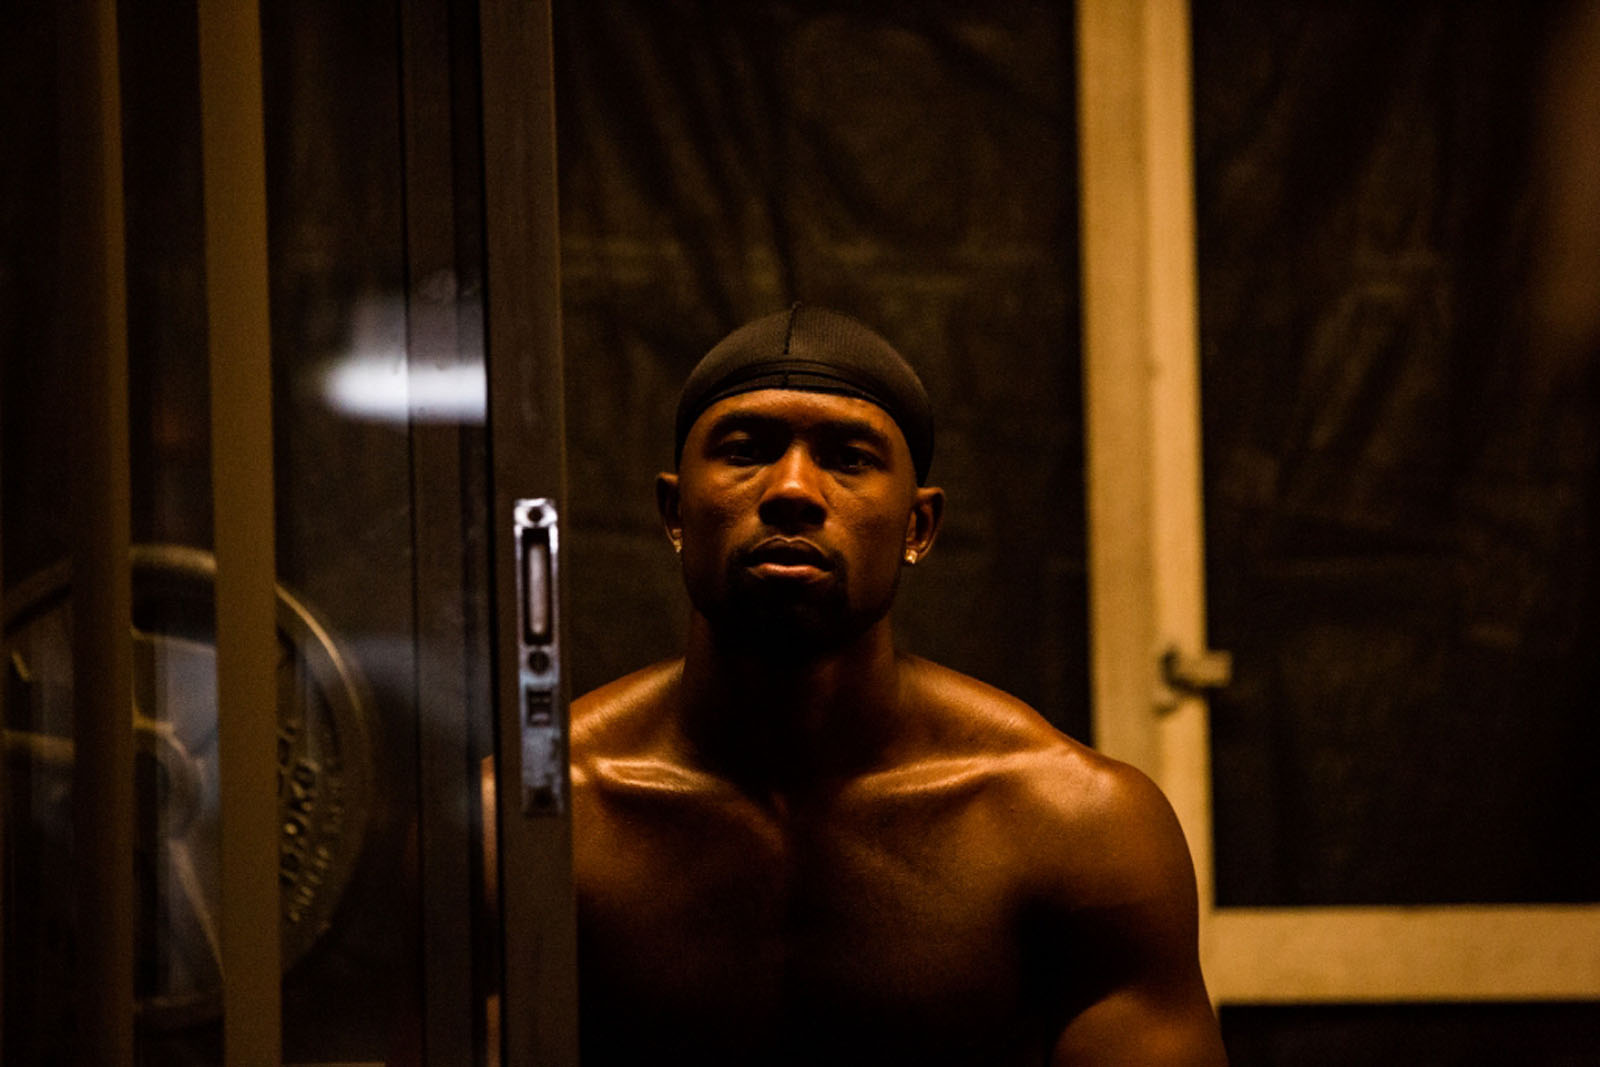 moonlight-photo-trevante-rhodes-976126.jpg